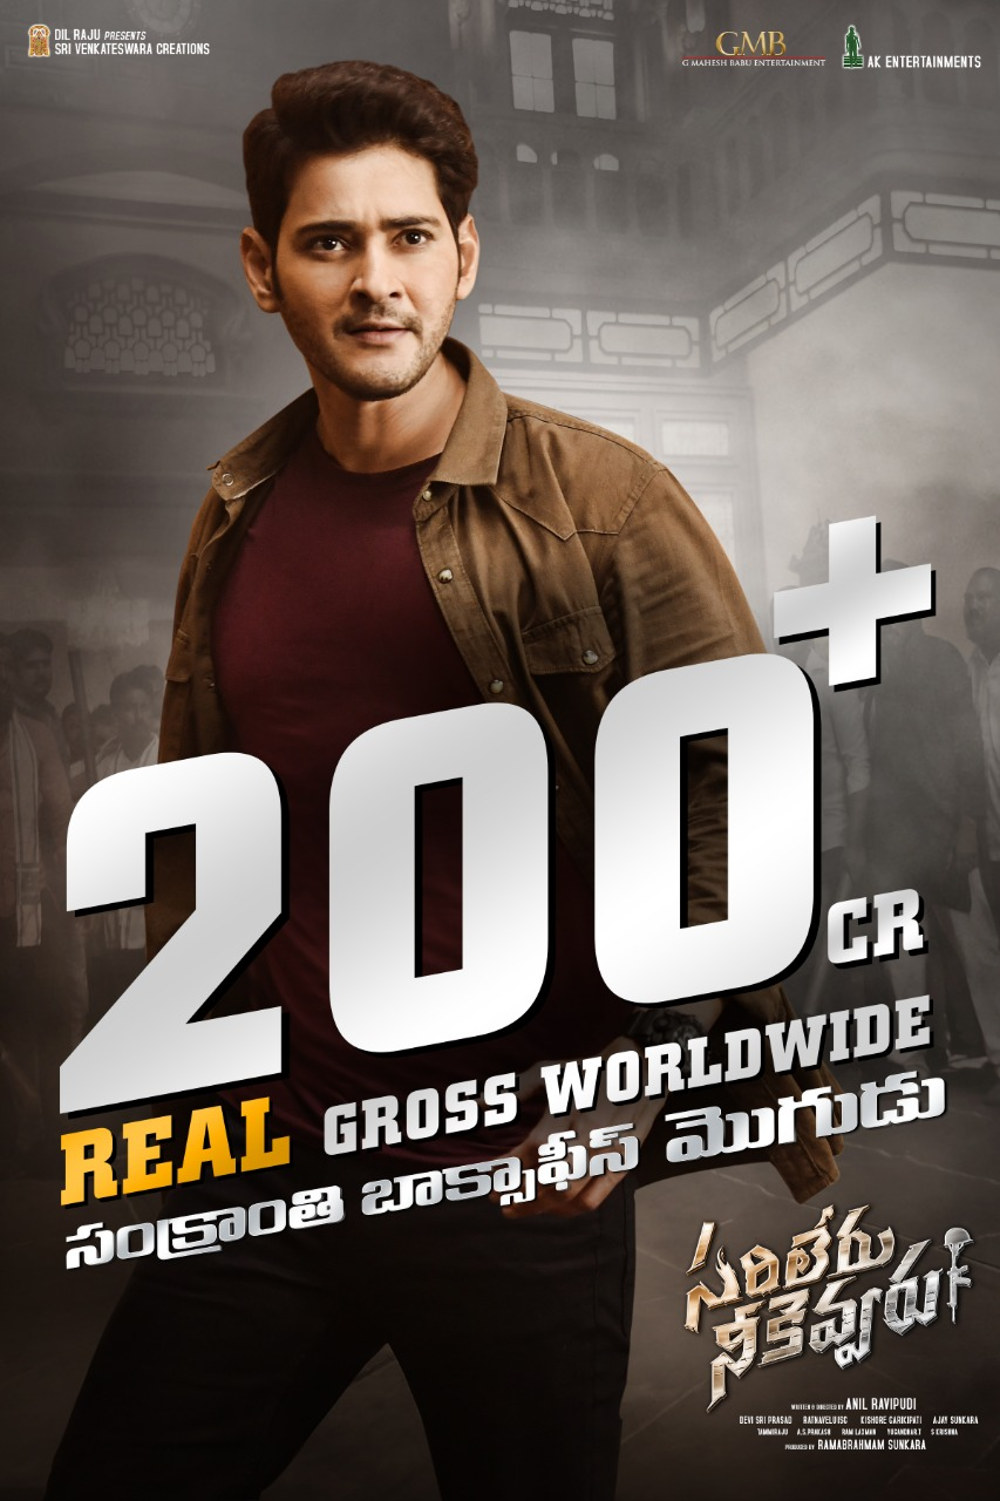 Mahesh's 'Sarileru Neekevvaru' Emerged As The Sankranthi Champion Collecting A Gross Of 200 Crores